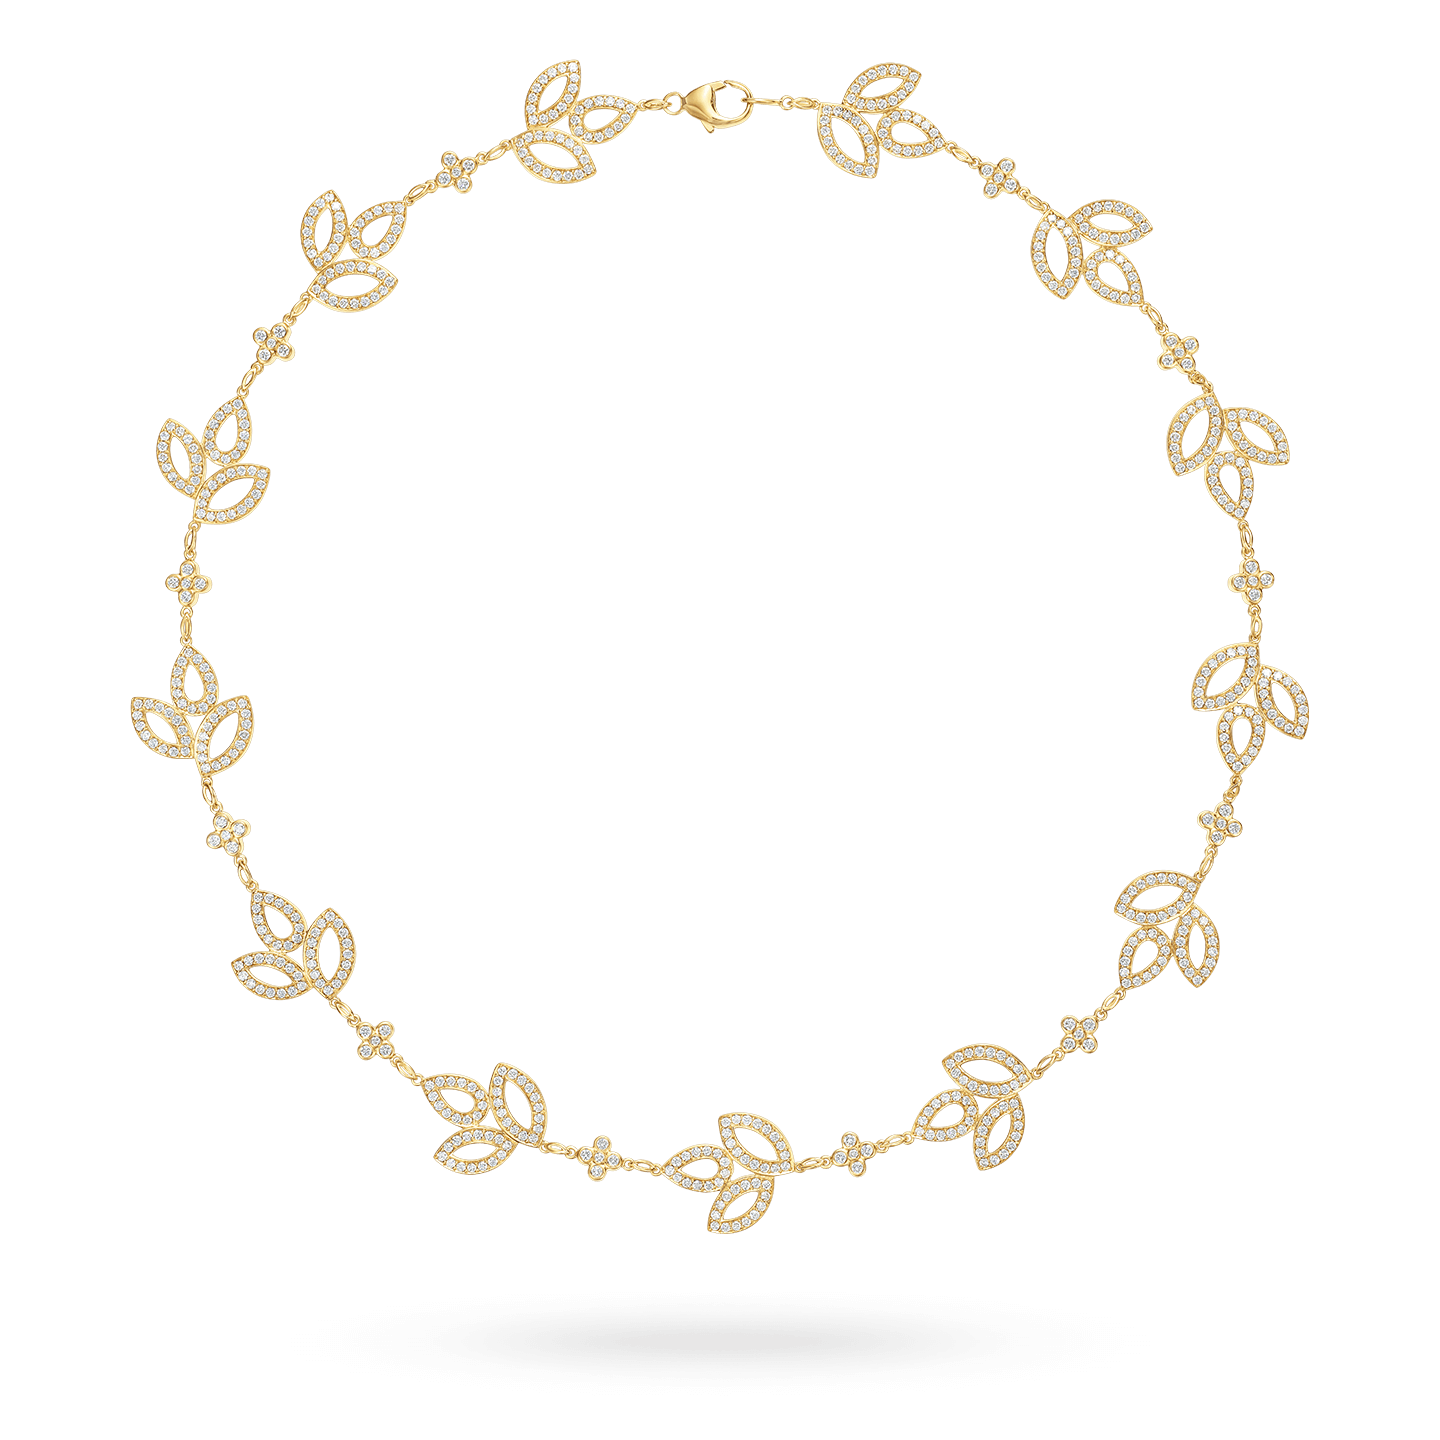 Lily Cluster Diamond Necklace in Yellow Gold, Product Image 1